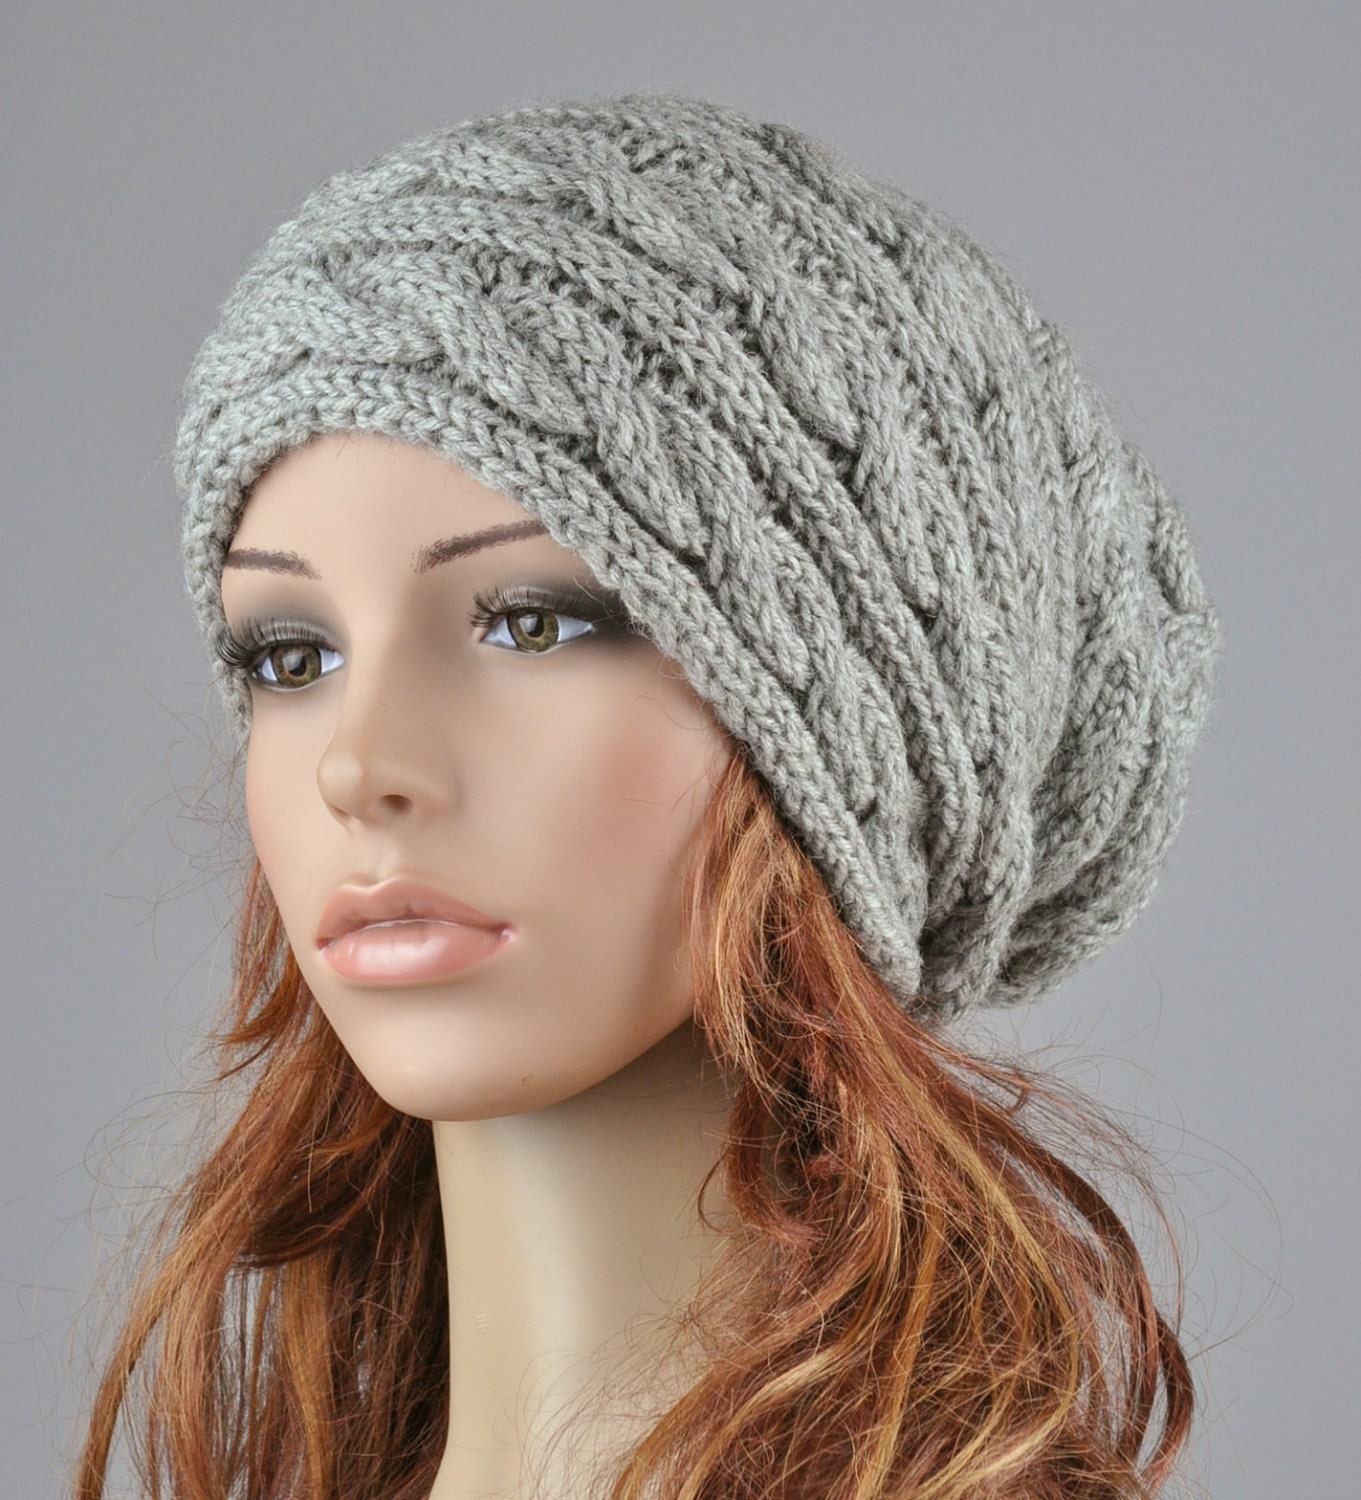 Knitting Pattern For Slouchy Hat : Hand knit hat Grey hat slouchy hat cable pattern hat